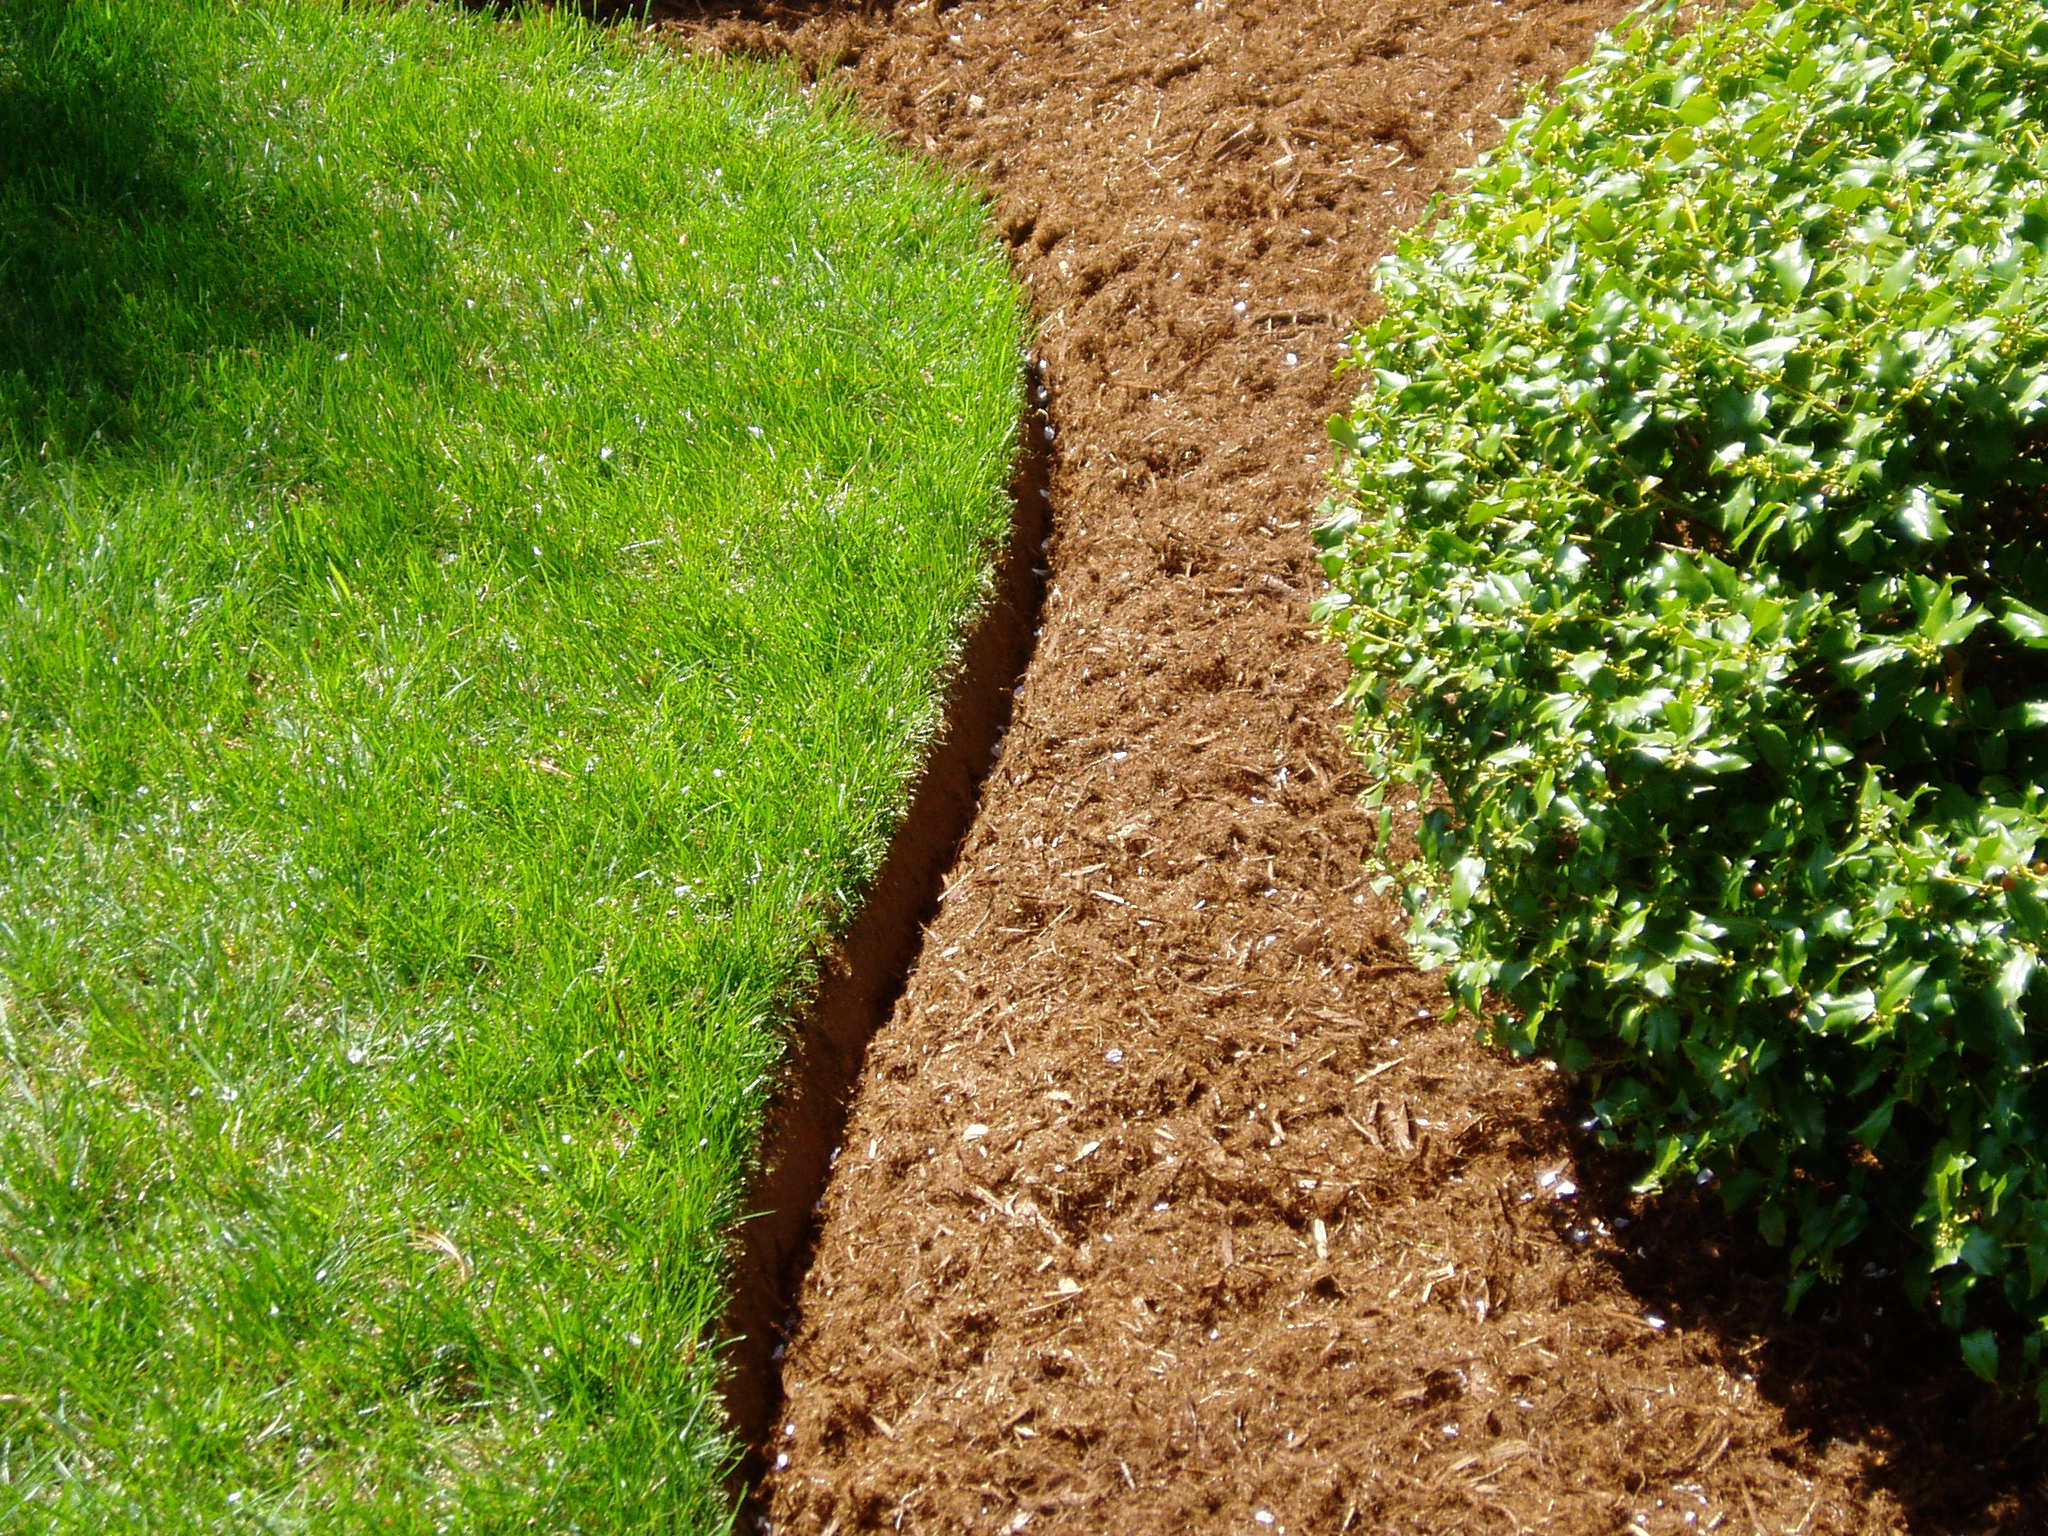 Brick Pavers Home Depot | Lawn Divider | Landscape Edging Ideas